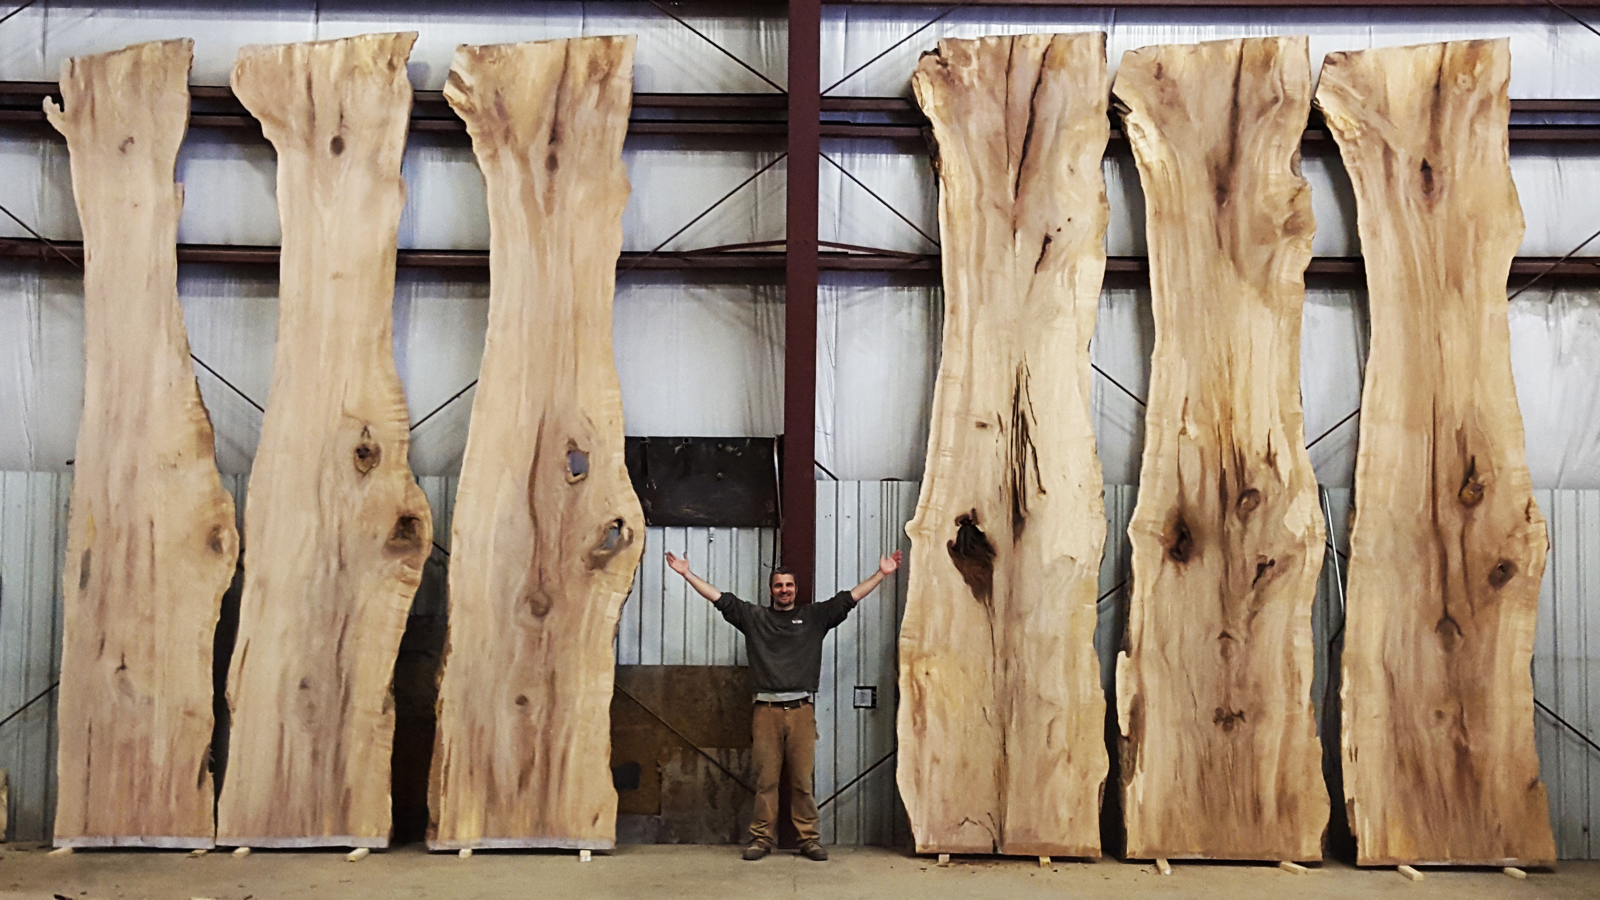 John-with-Picnic-Maple-Slabs2